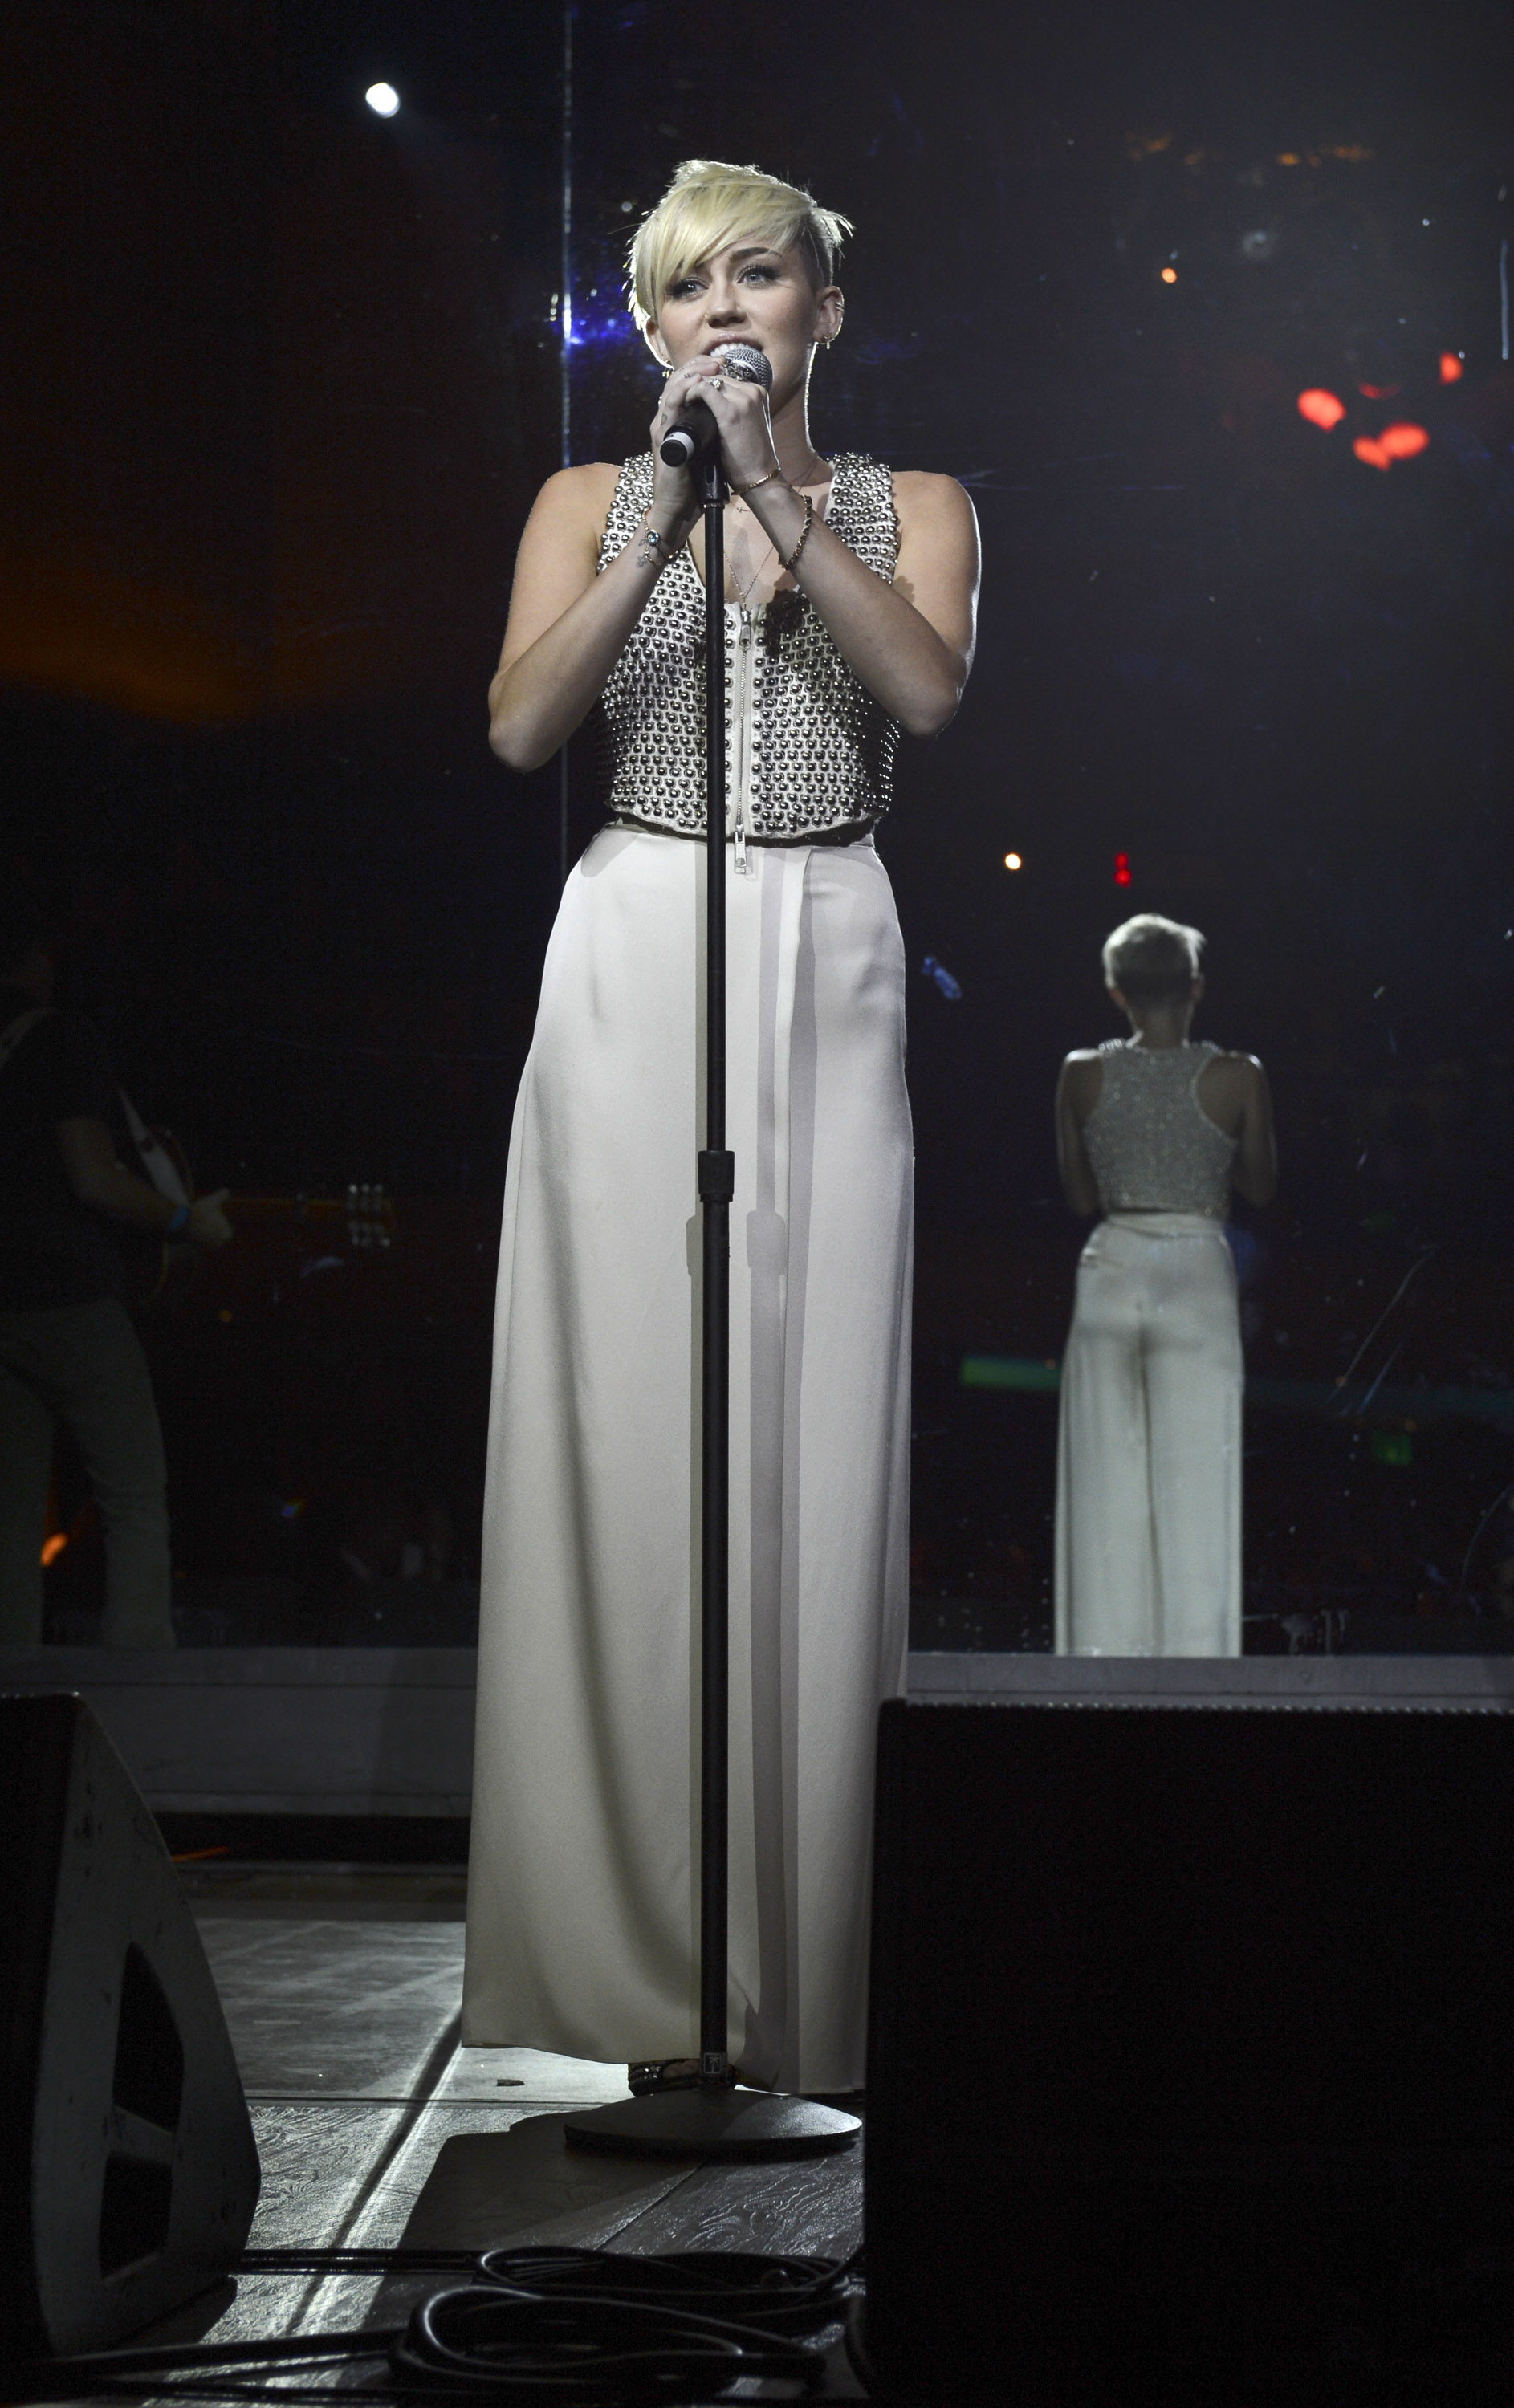 Miley Cyrus chose a full-length cream skirt for the gala.